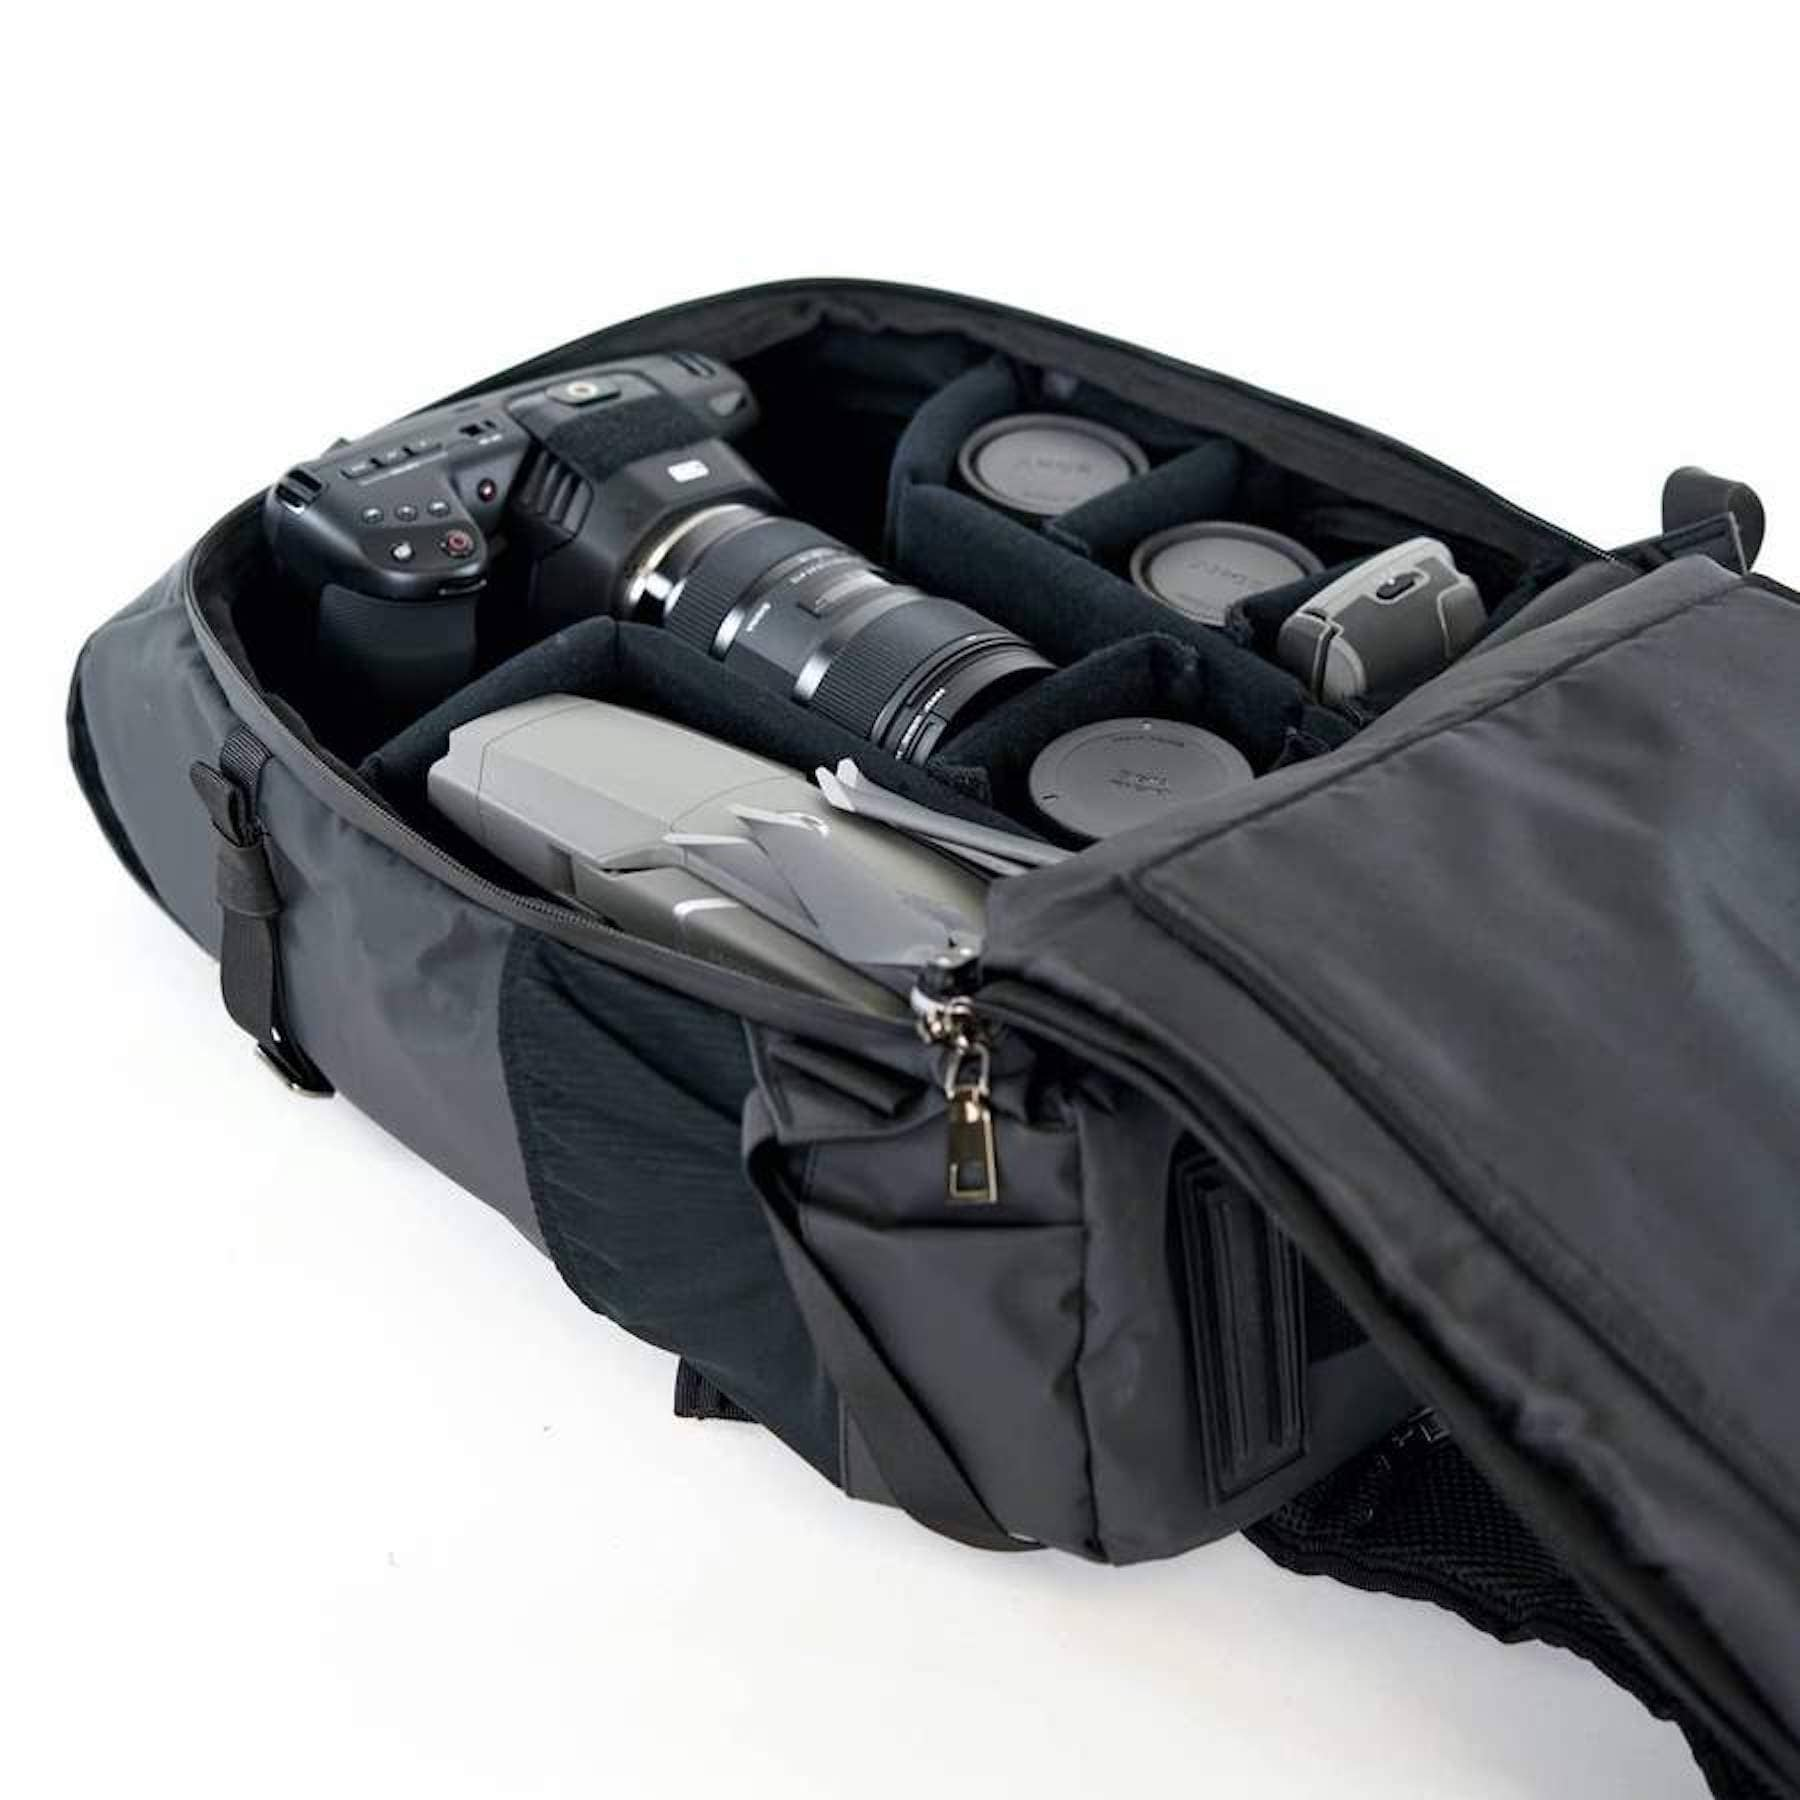 Best Sports Camera - Best Camera for Sports Photography - Camera Backpack Gear